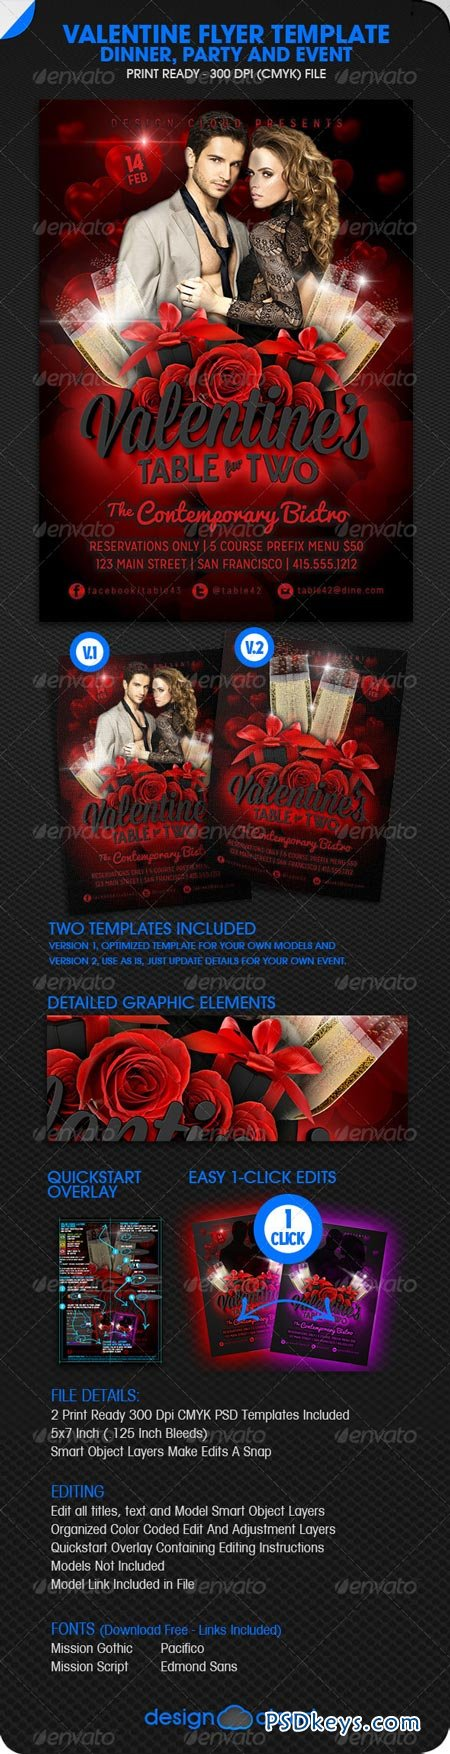 Valentine Dinner, Party and Event Flyer 6512071